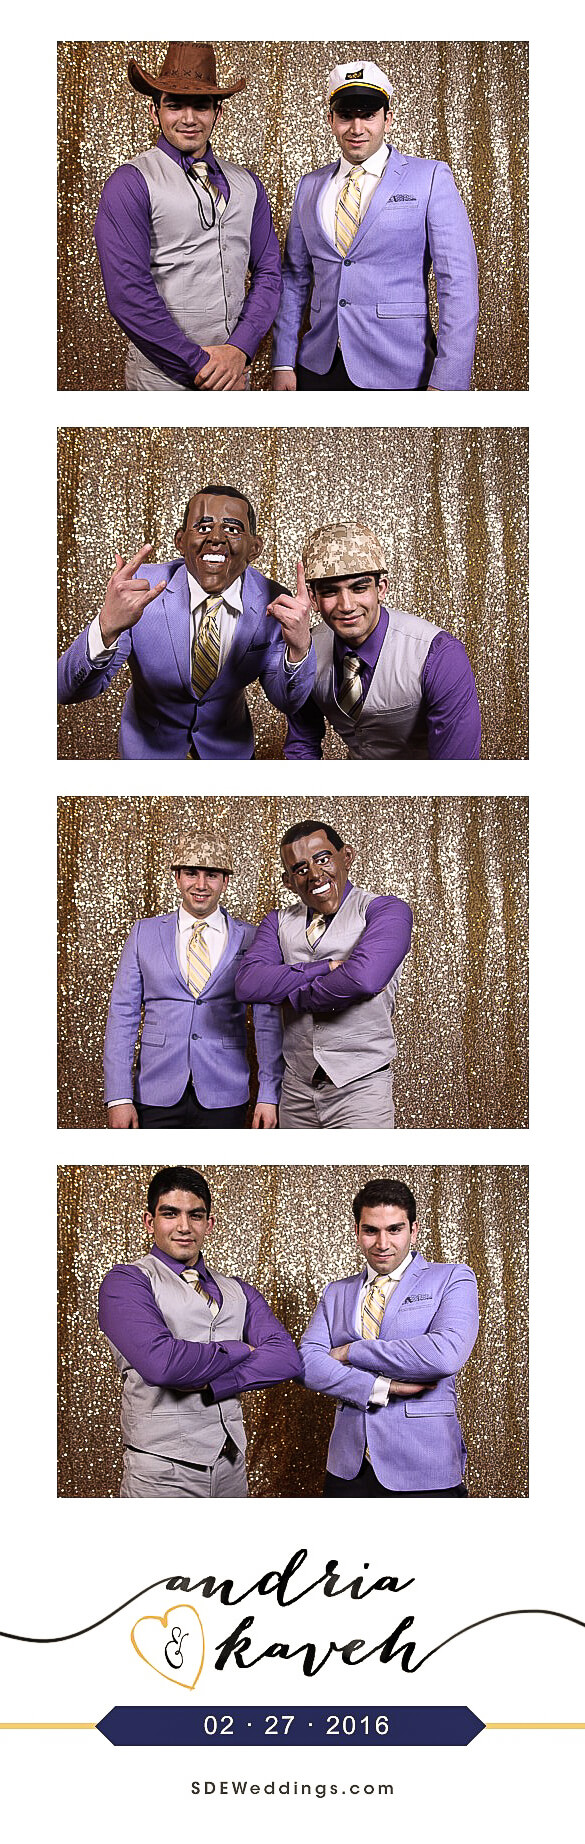 Toronto 99 Sudbury Wedding Photo Booth Rental 6